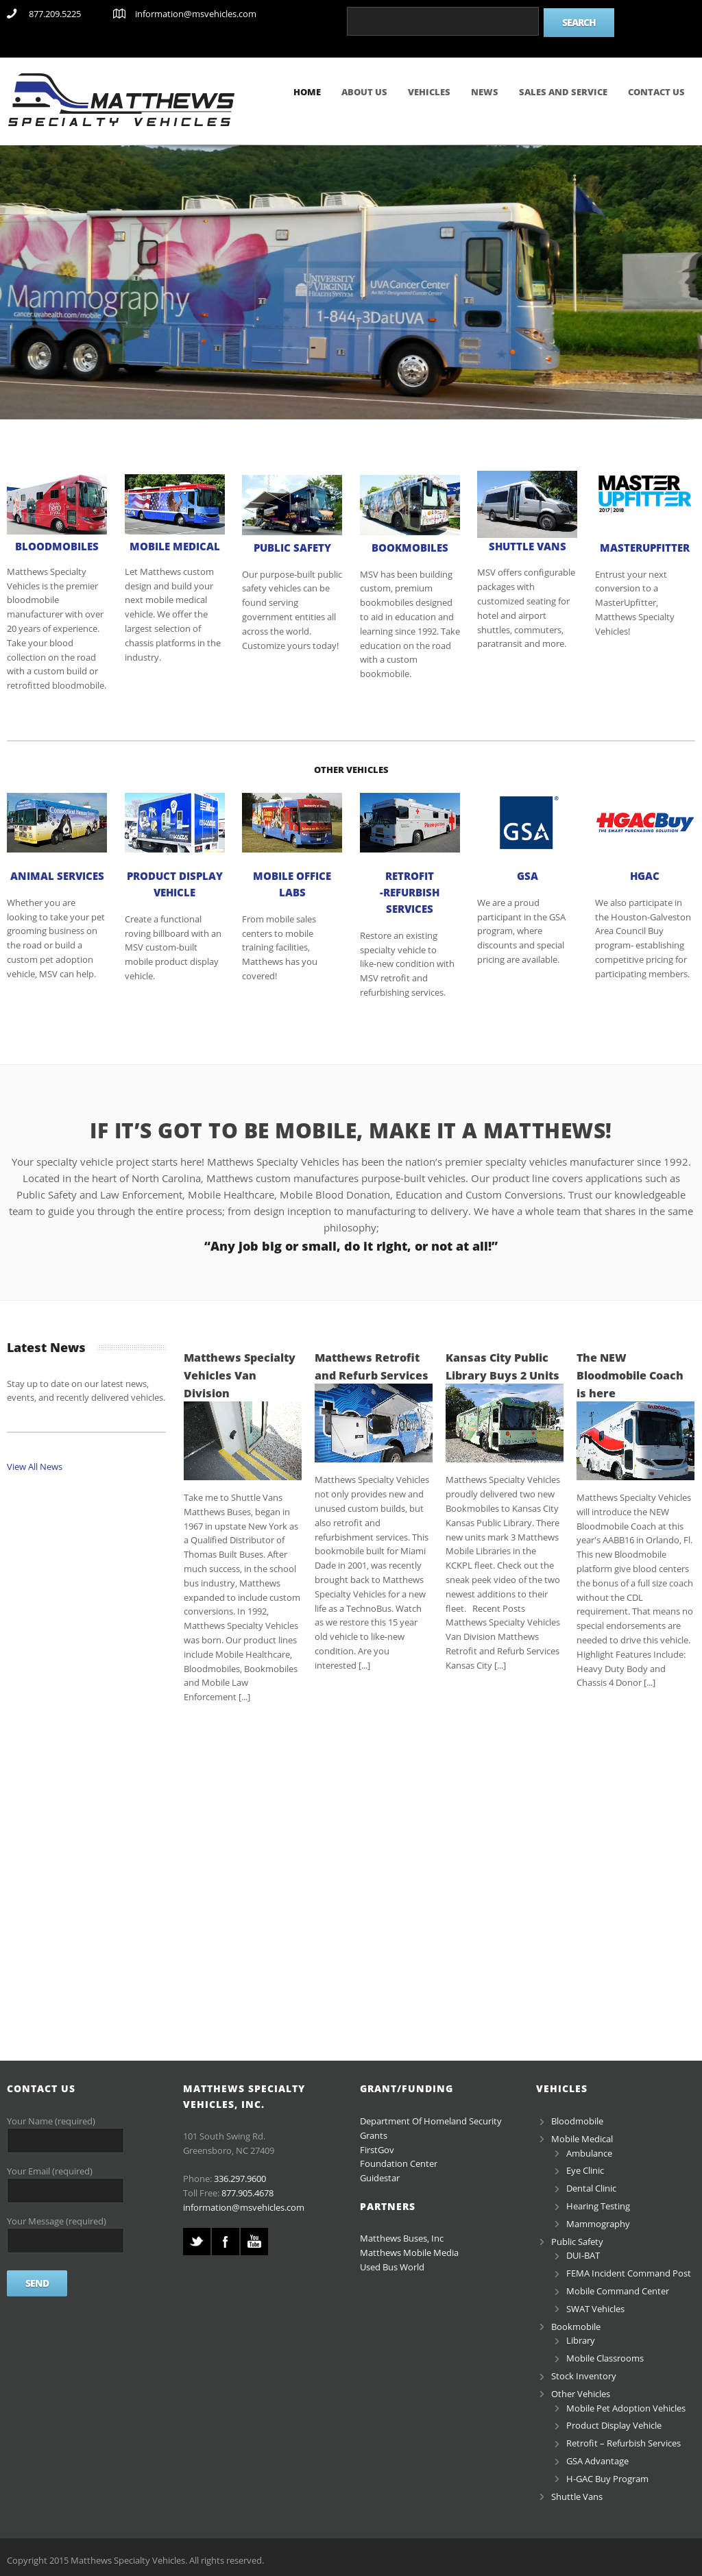 Matthews Specialty Vehicles Competitors, Revenue and